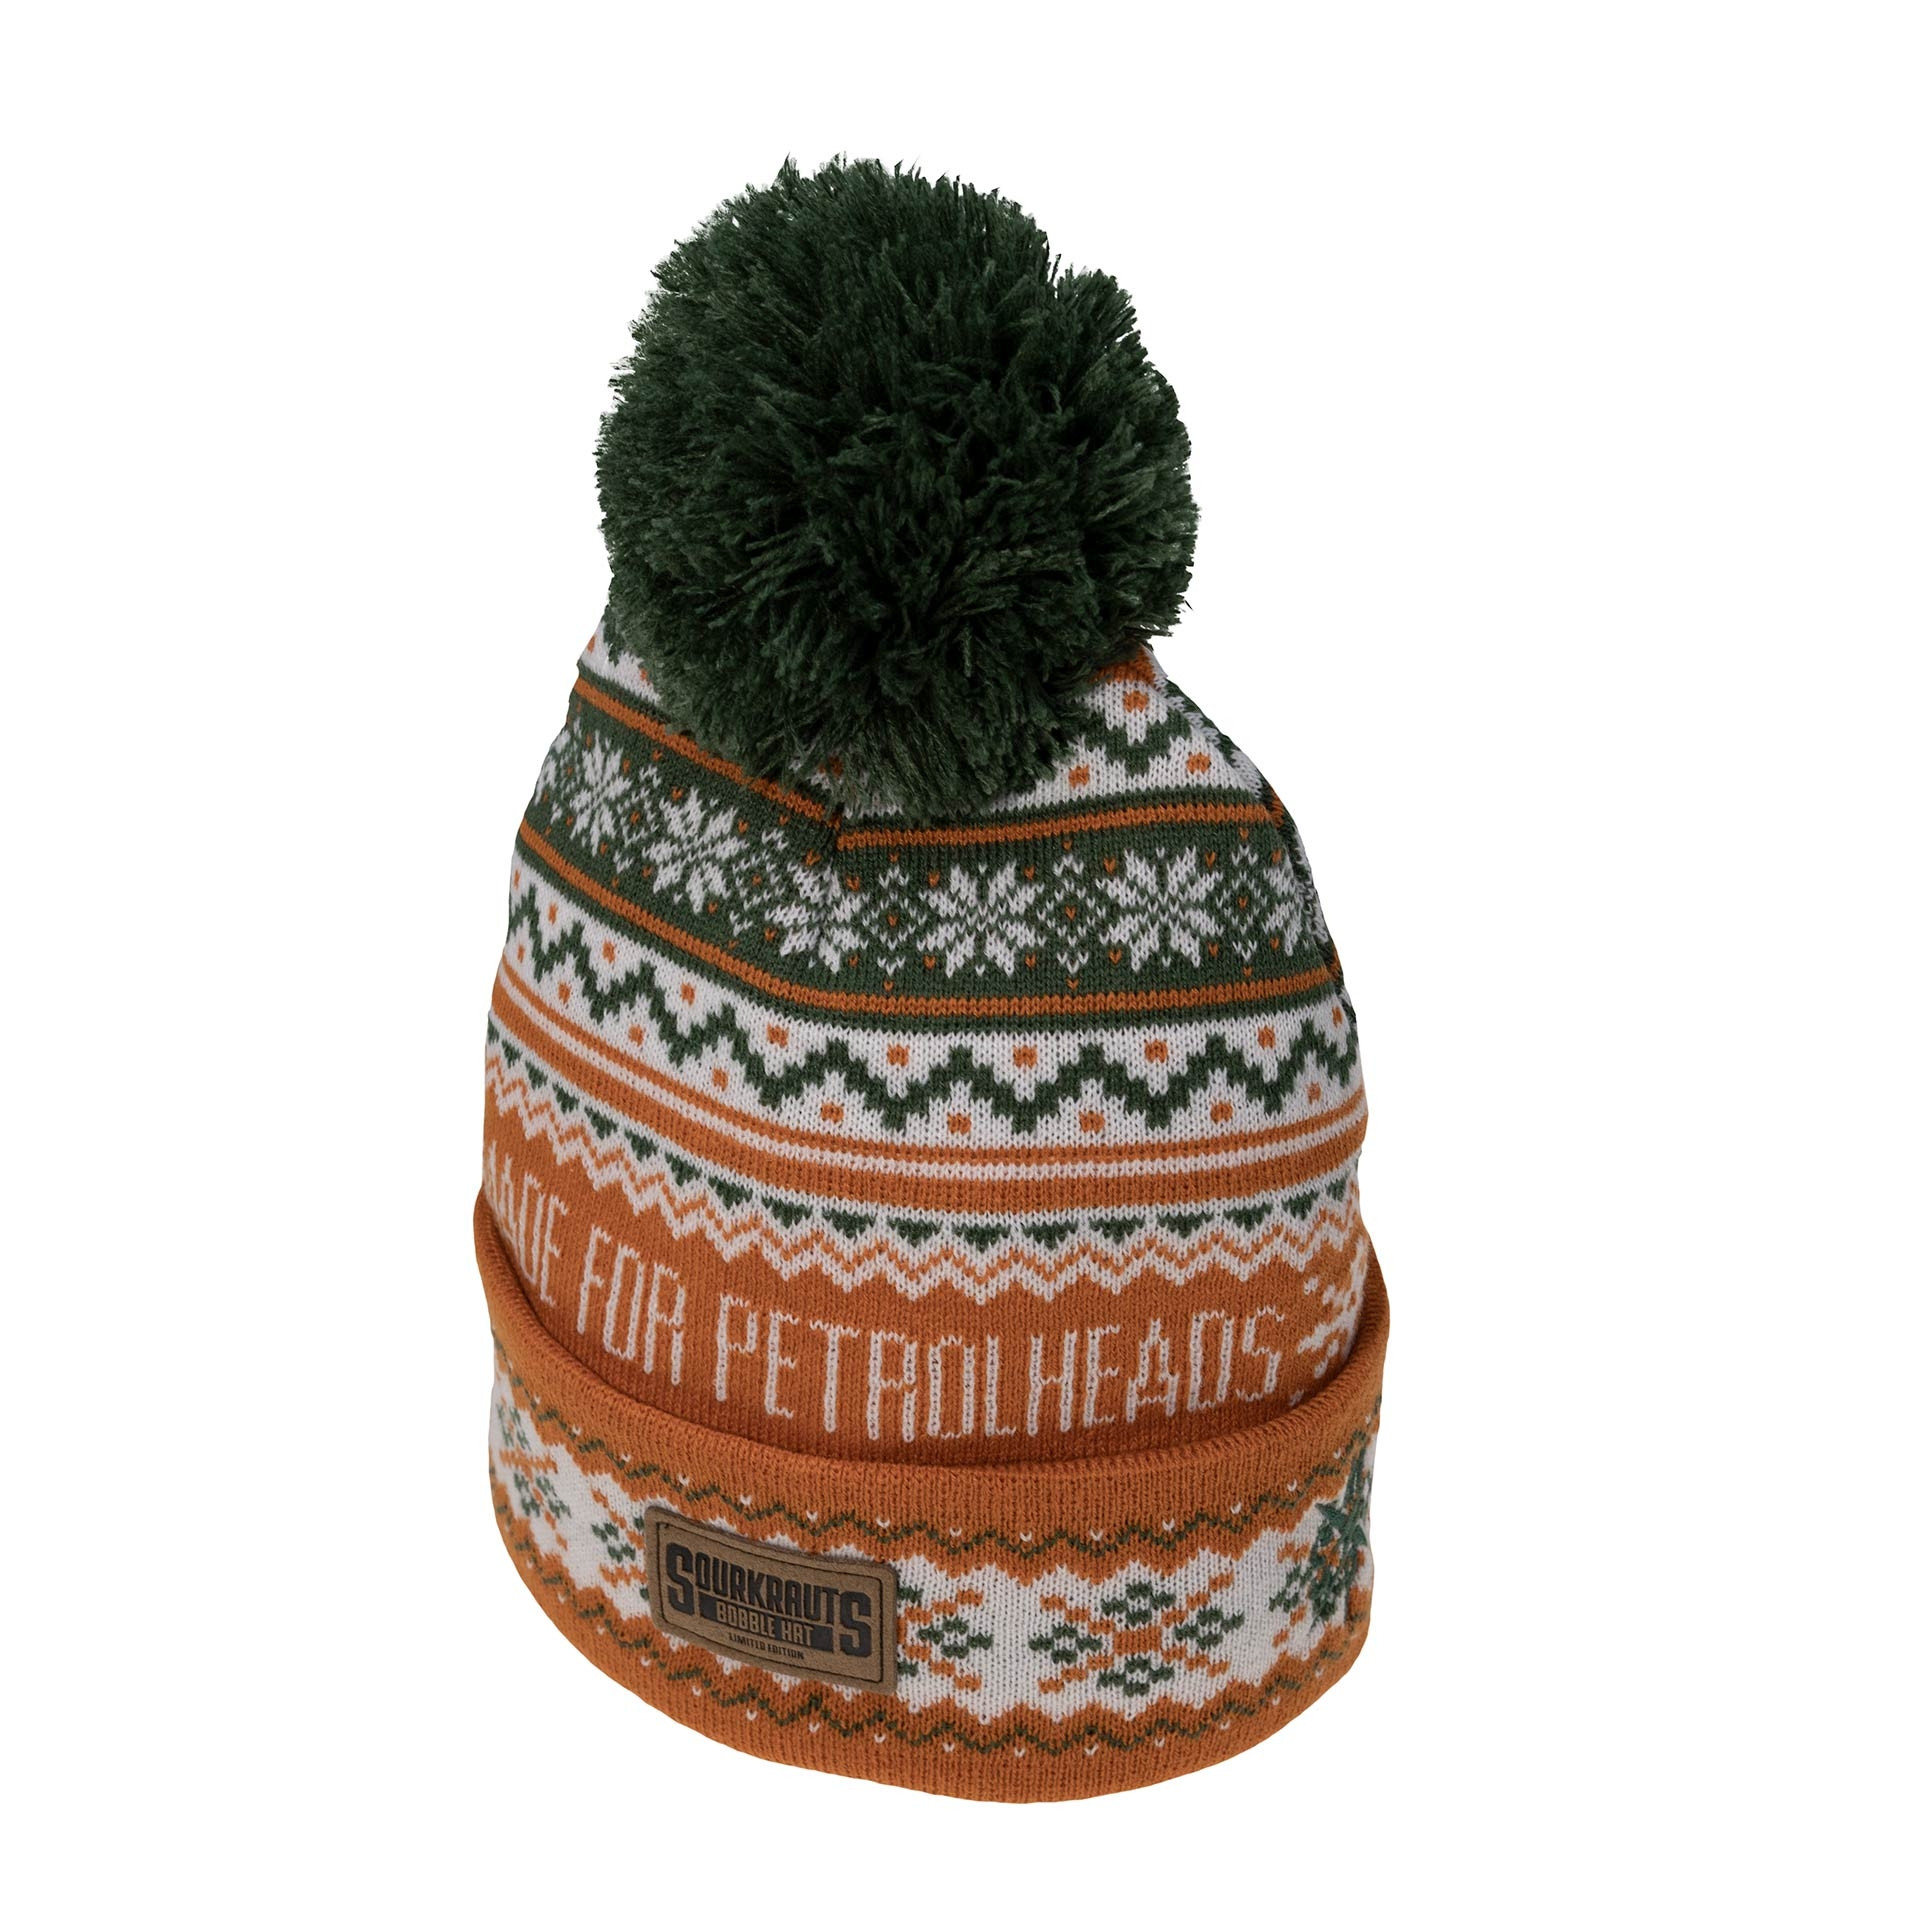 × LIMITED EDITION × Bobblehat 2020/21 | Green-Brown